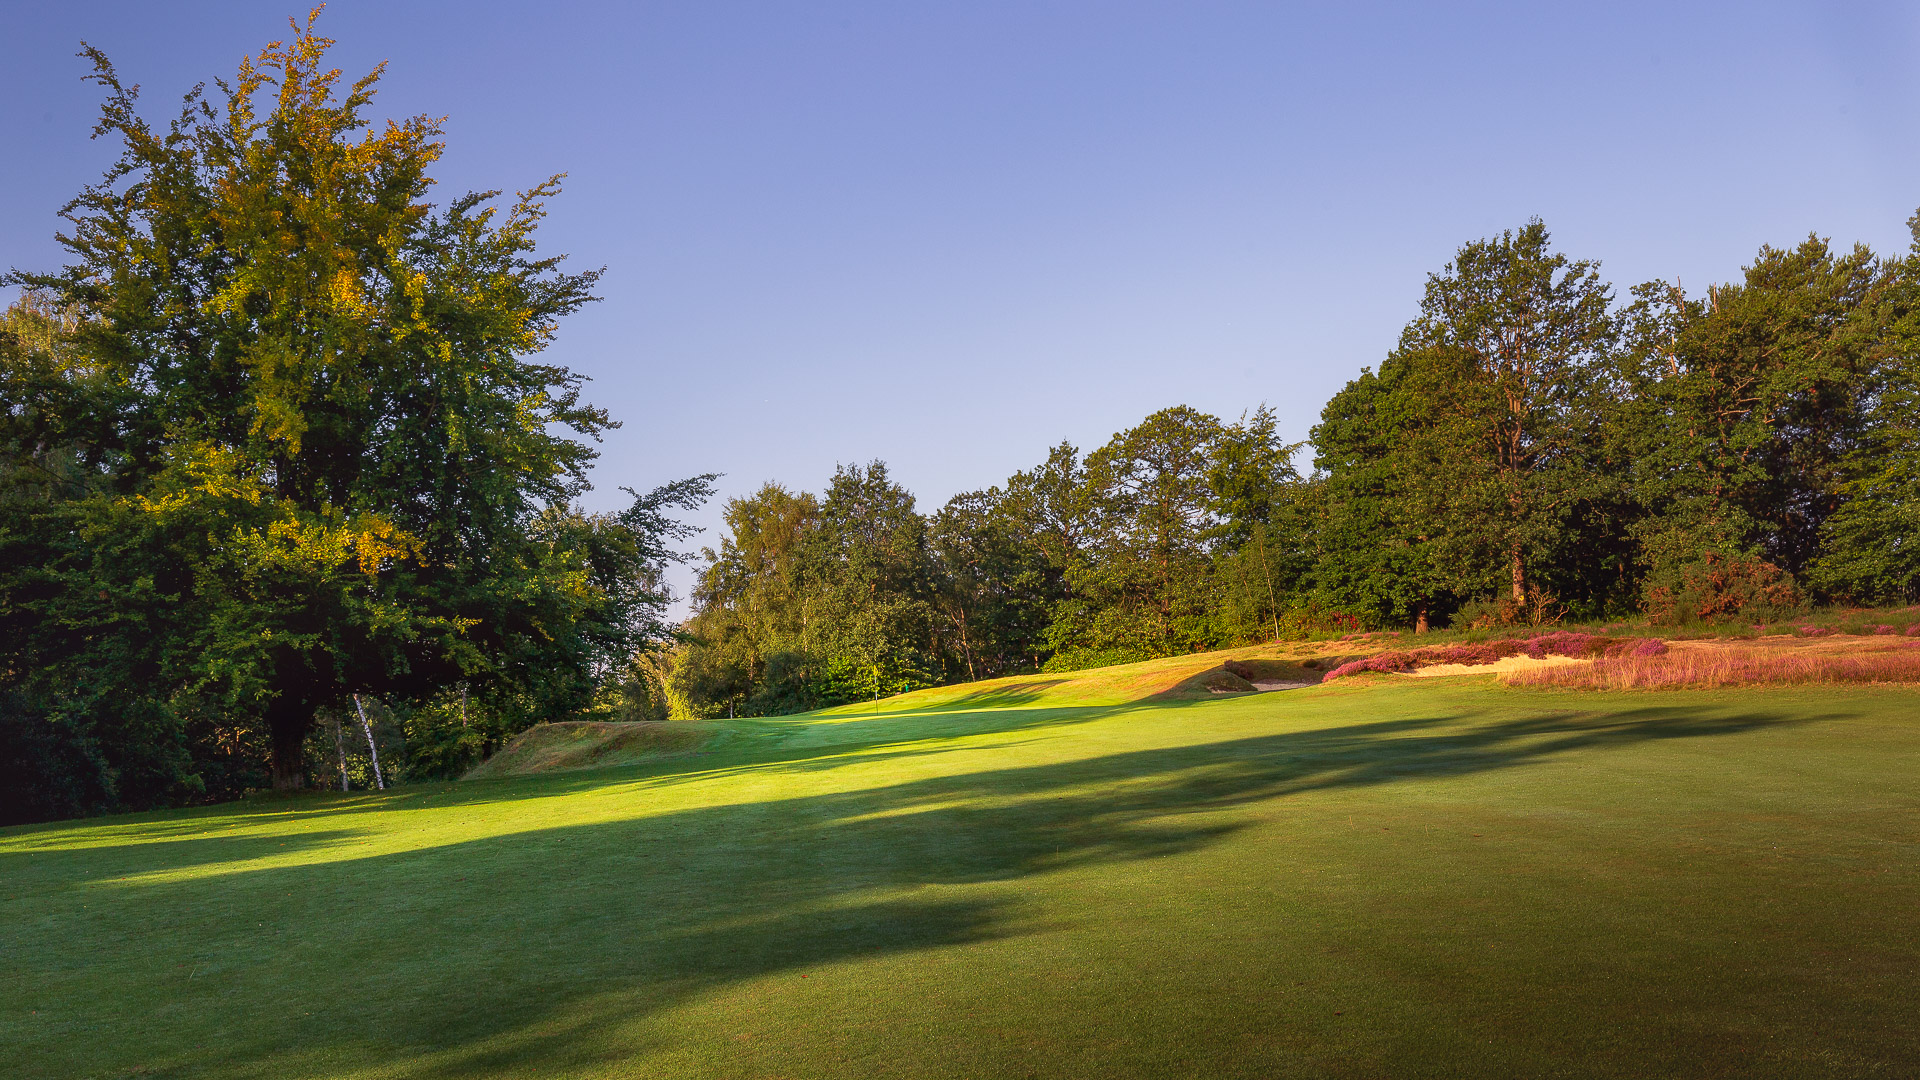 21st-Hole-St-Georges-Hill-Golf-Club-2052-Edit